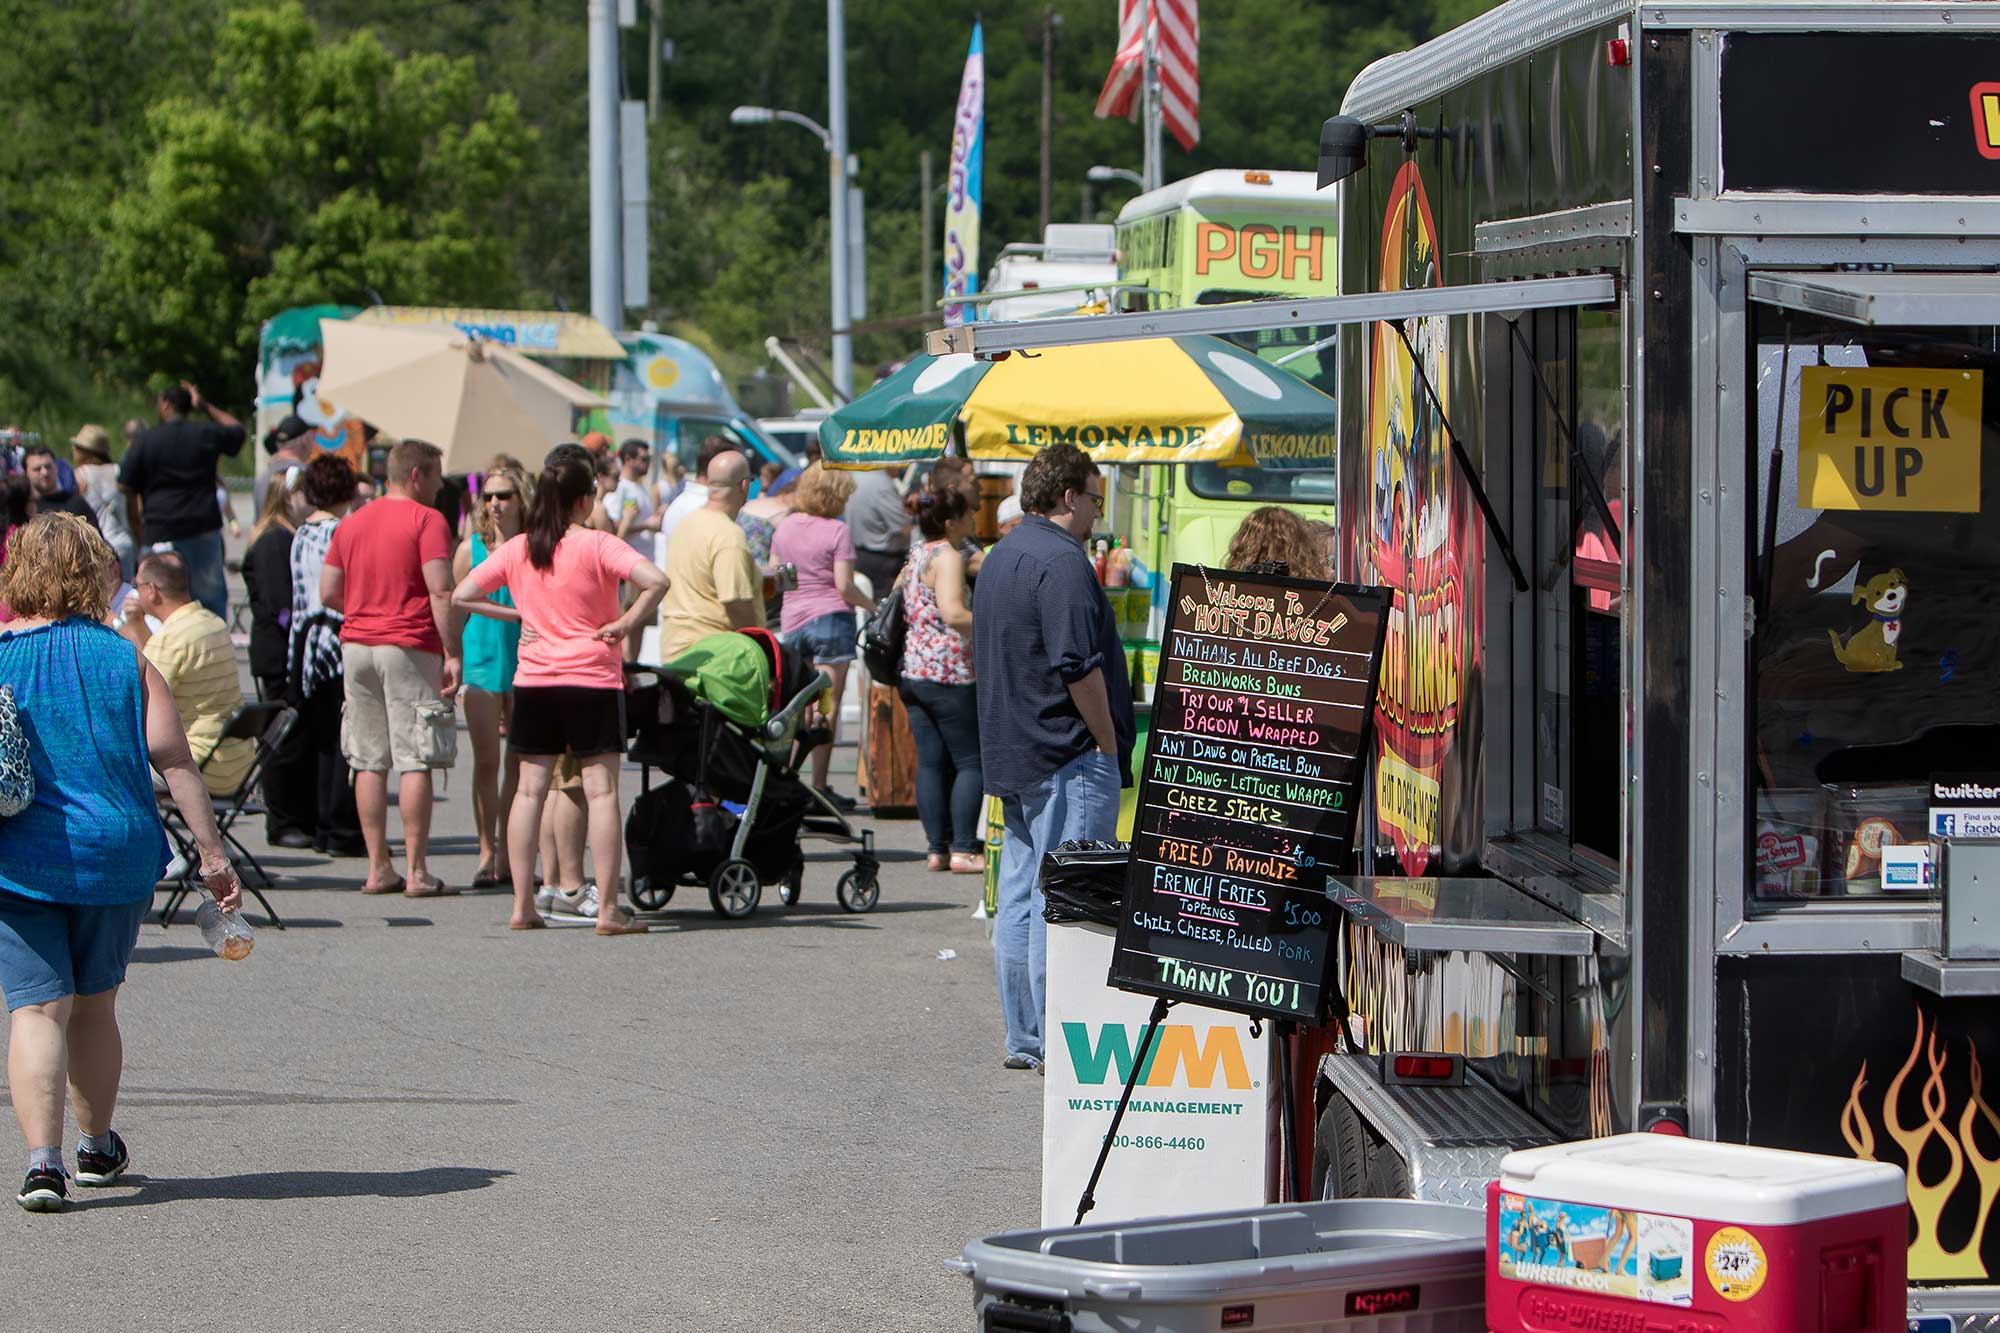 Revival Chili Food Truck